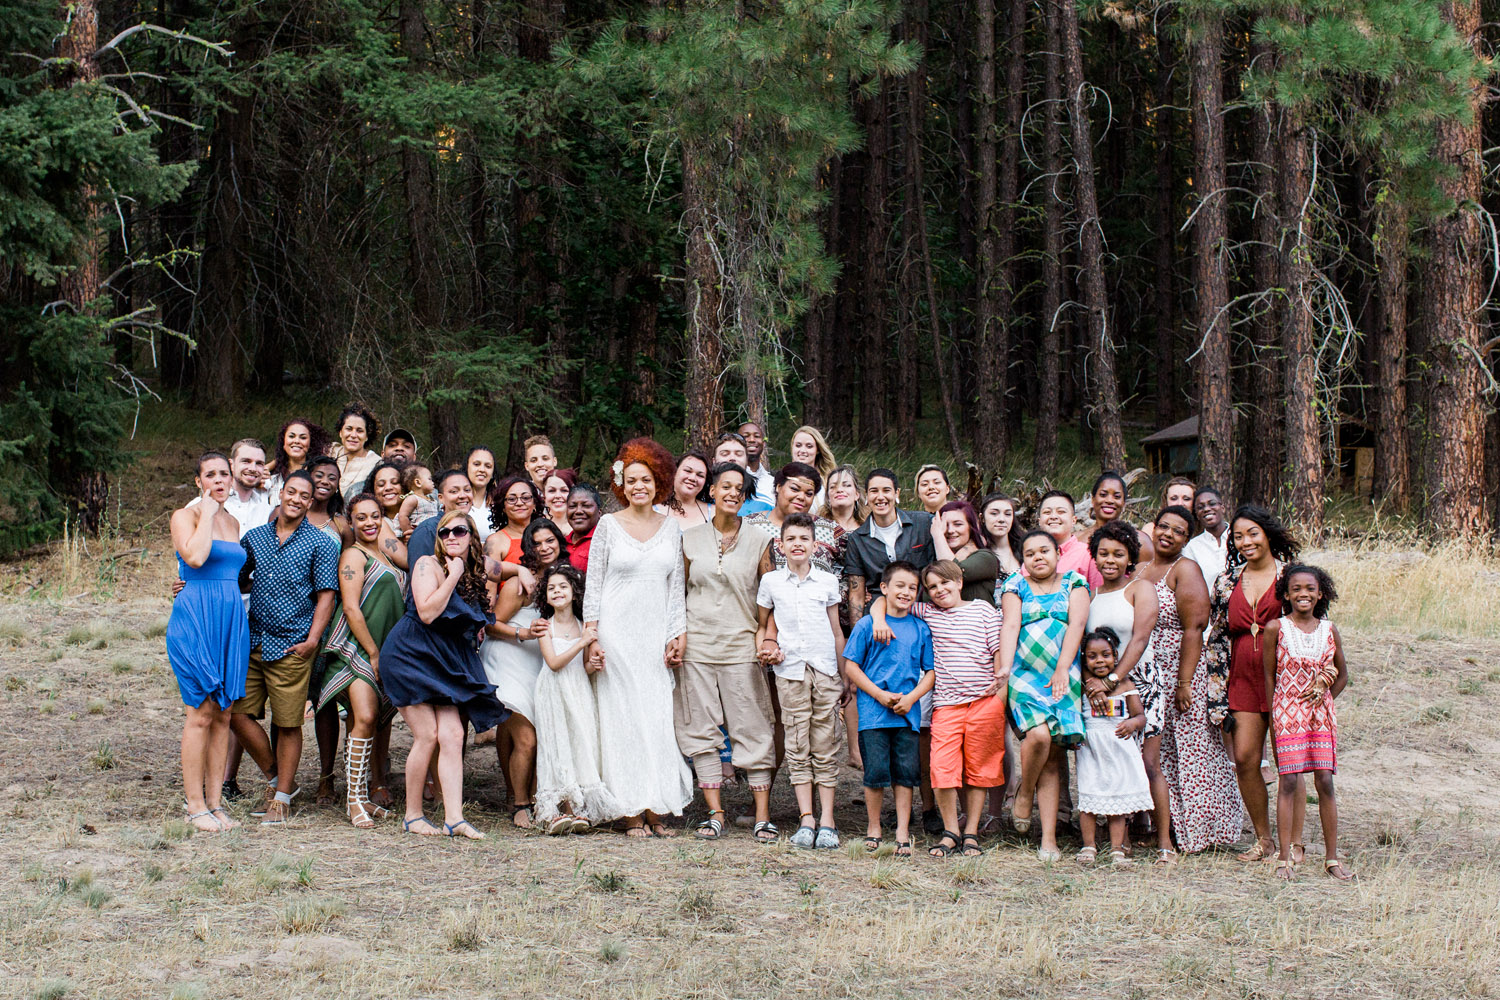 leavenworth washington boho camground wedding photography group photo.jpg